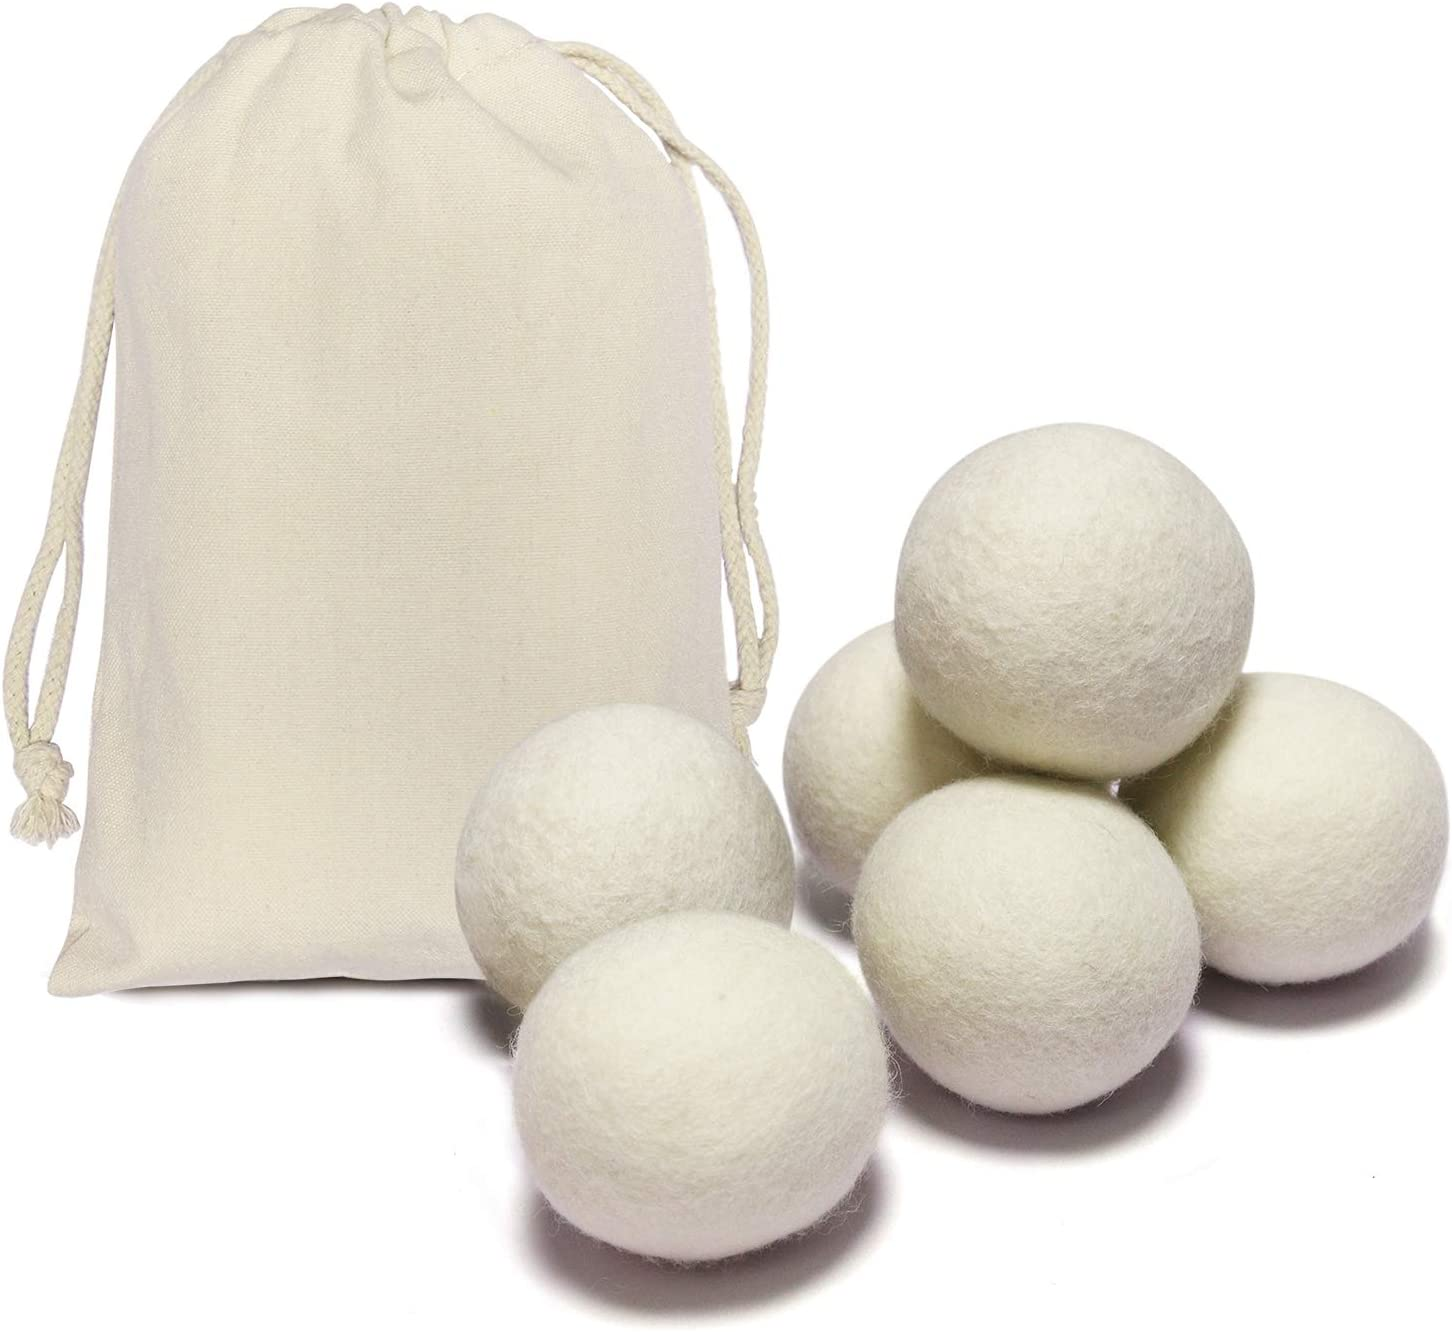 6 Pack All Natural Organic Wool Dryer Balls XL Size - Reusable Chemical Free Natural Fabric Softener, Anti Static, Reduces Clothing Wrinkles and Saves Drying Time (White)